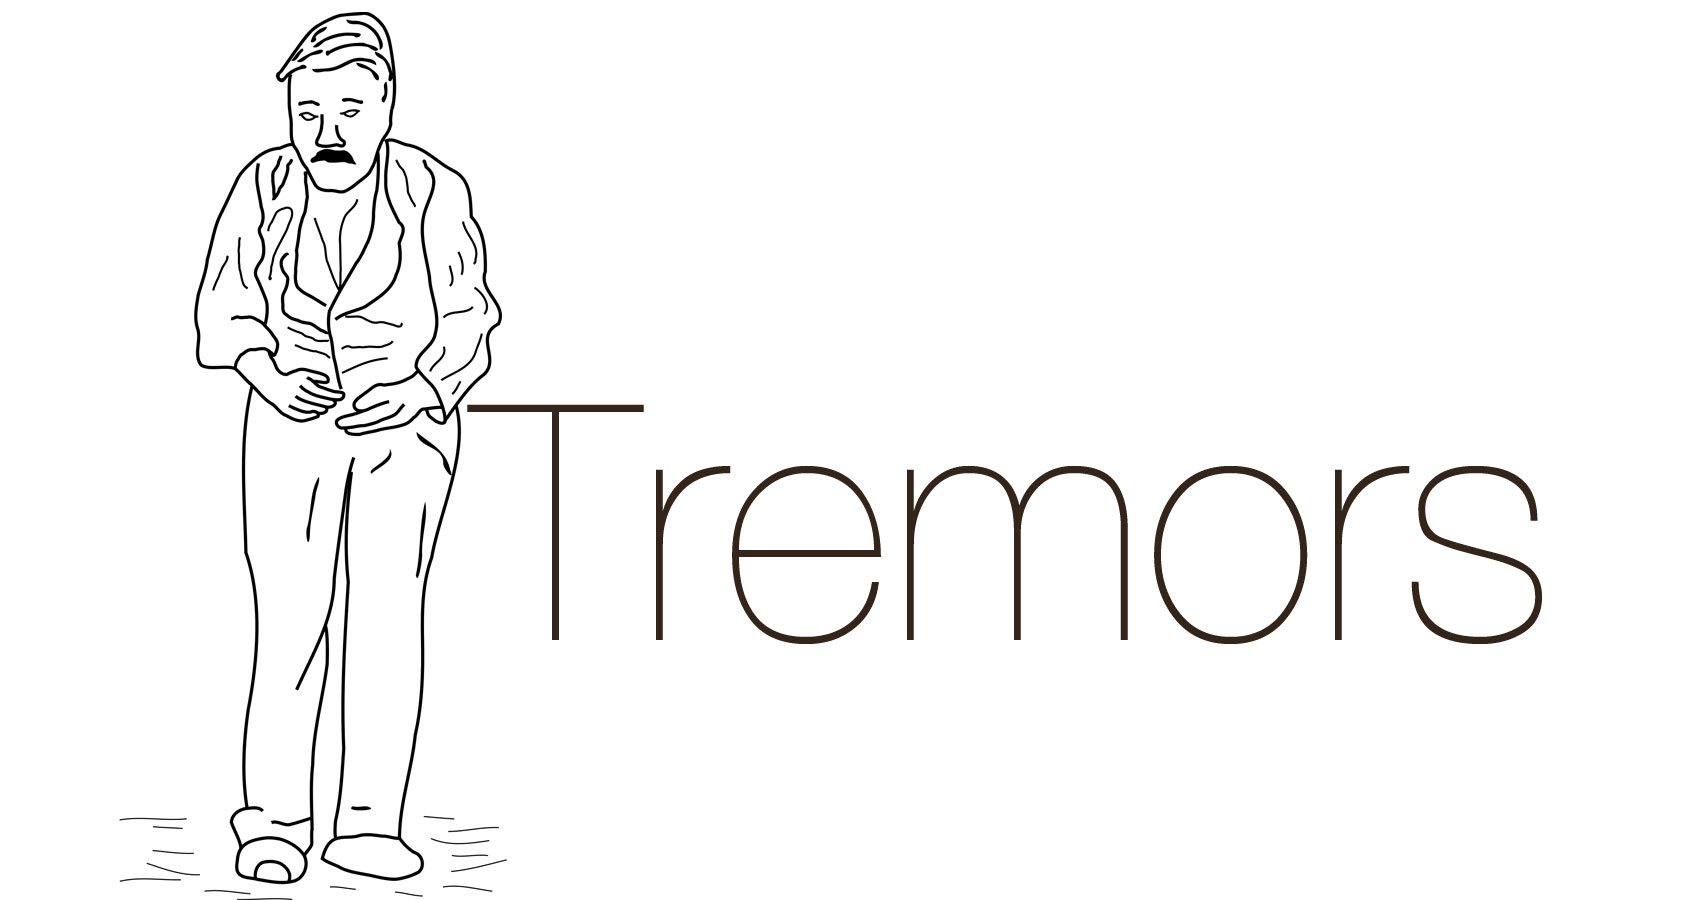 Tremors written by Aurora Kastanias at Spillwords.com